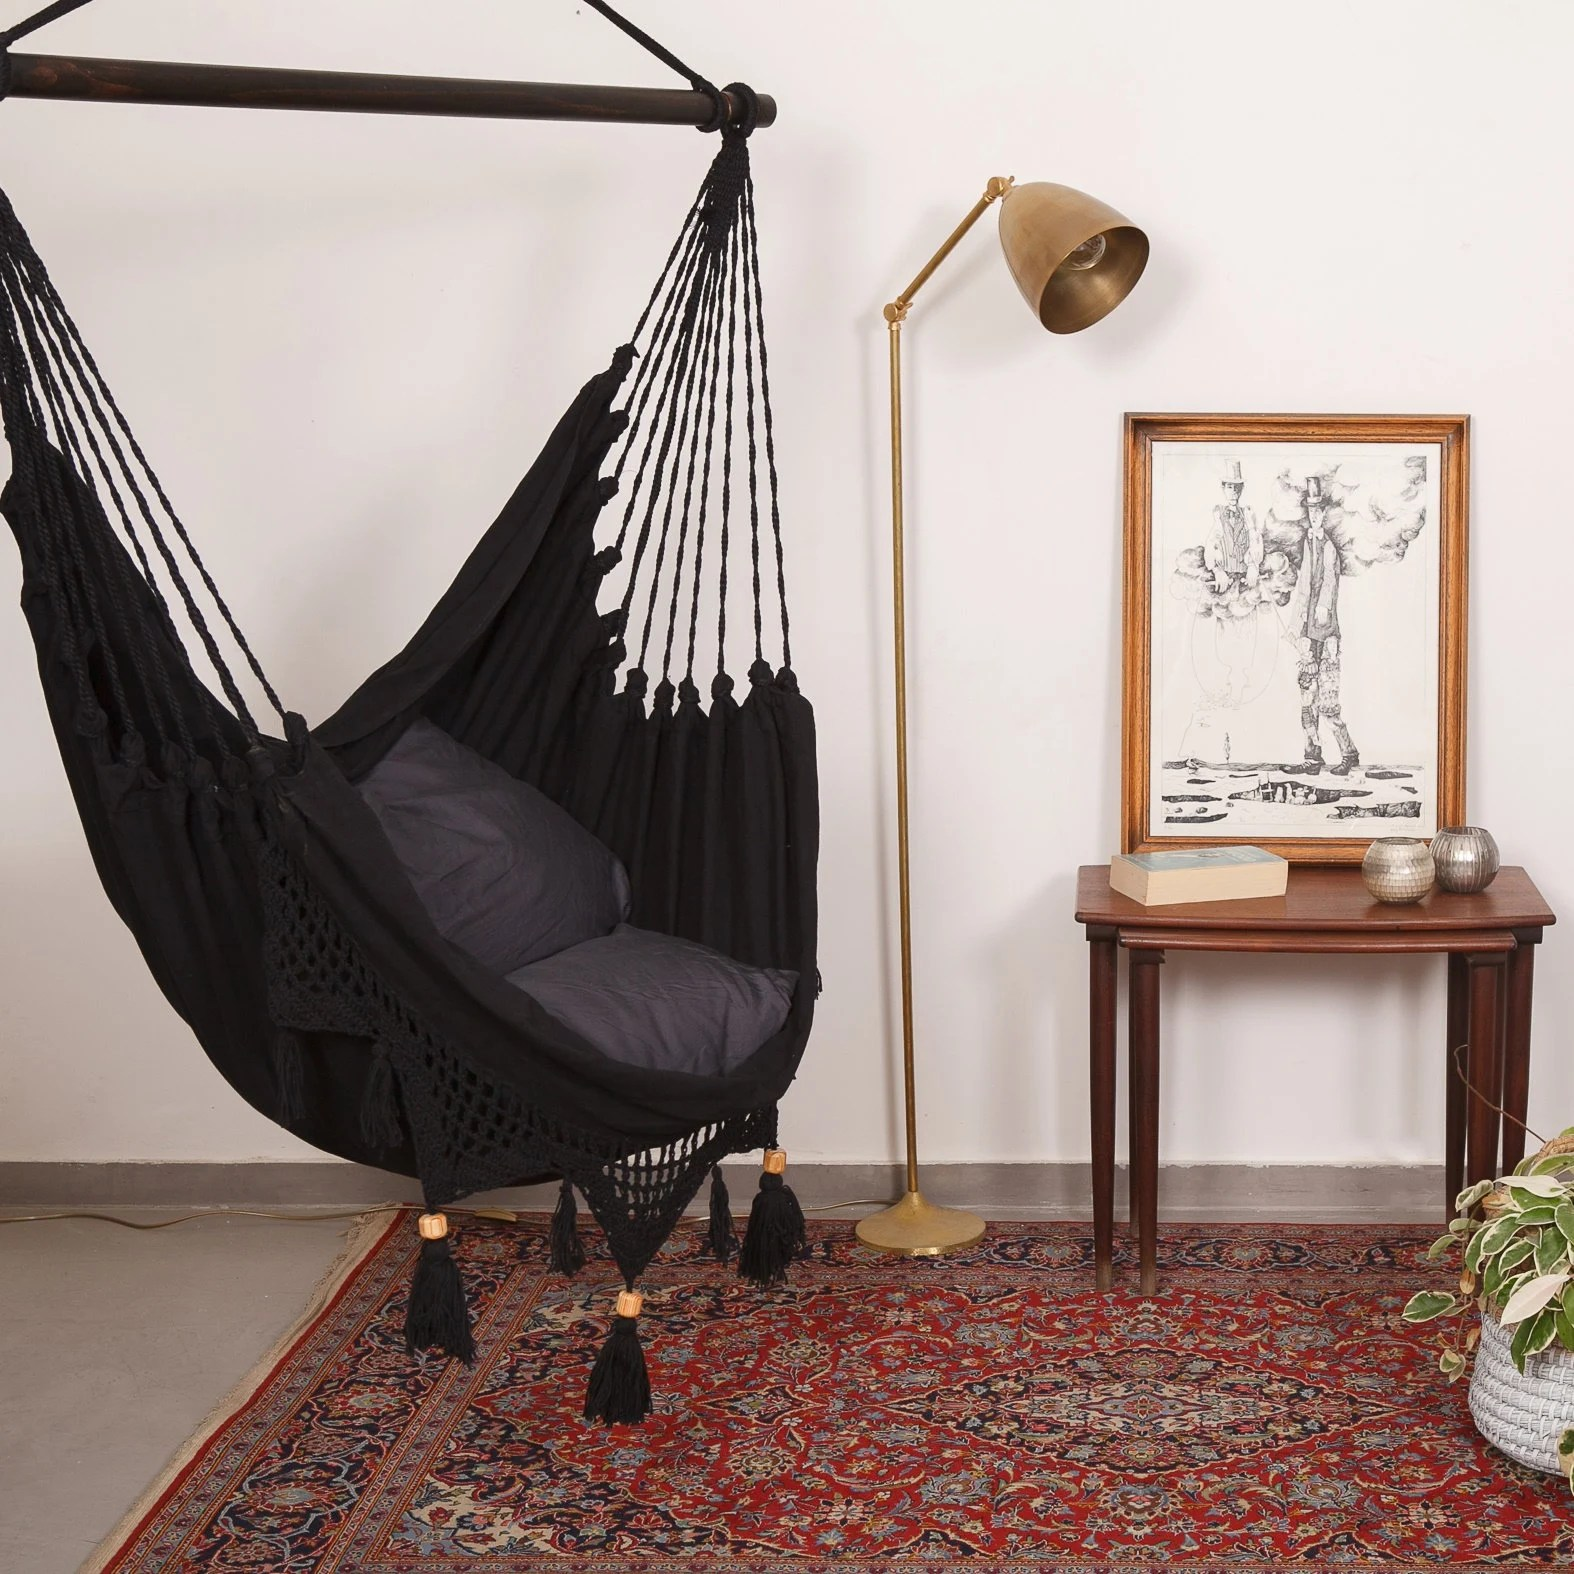 swing chair for bedroom high seat elderly hanging etsy hammock boho chic super comfy swinging in black with macrame